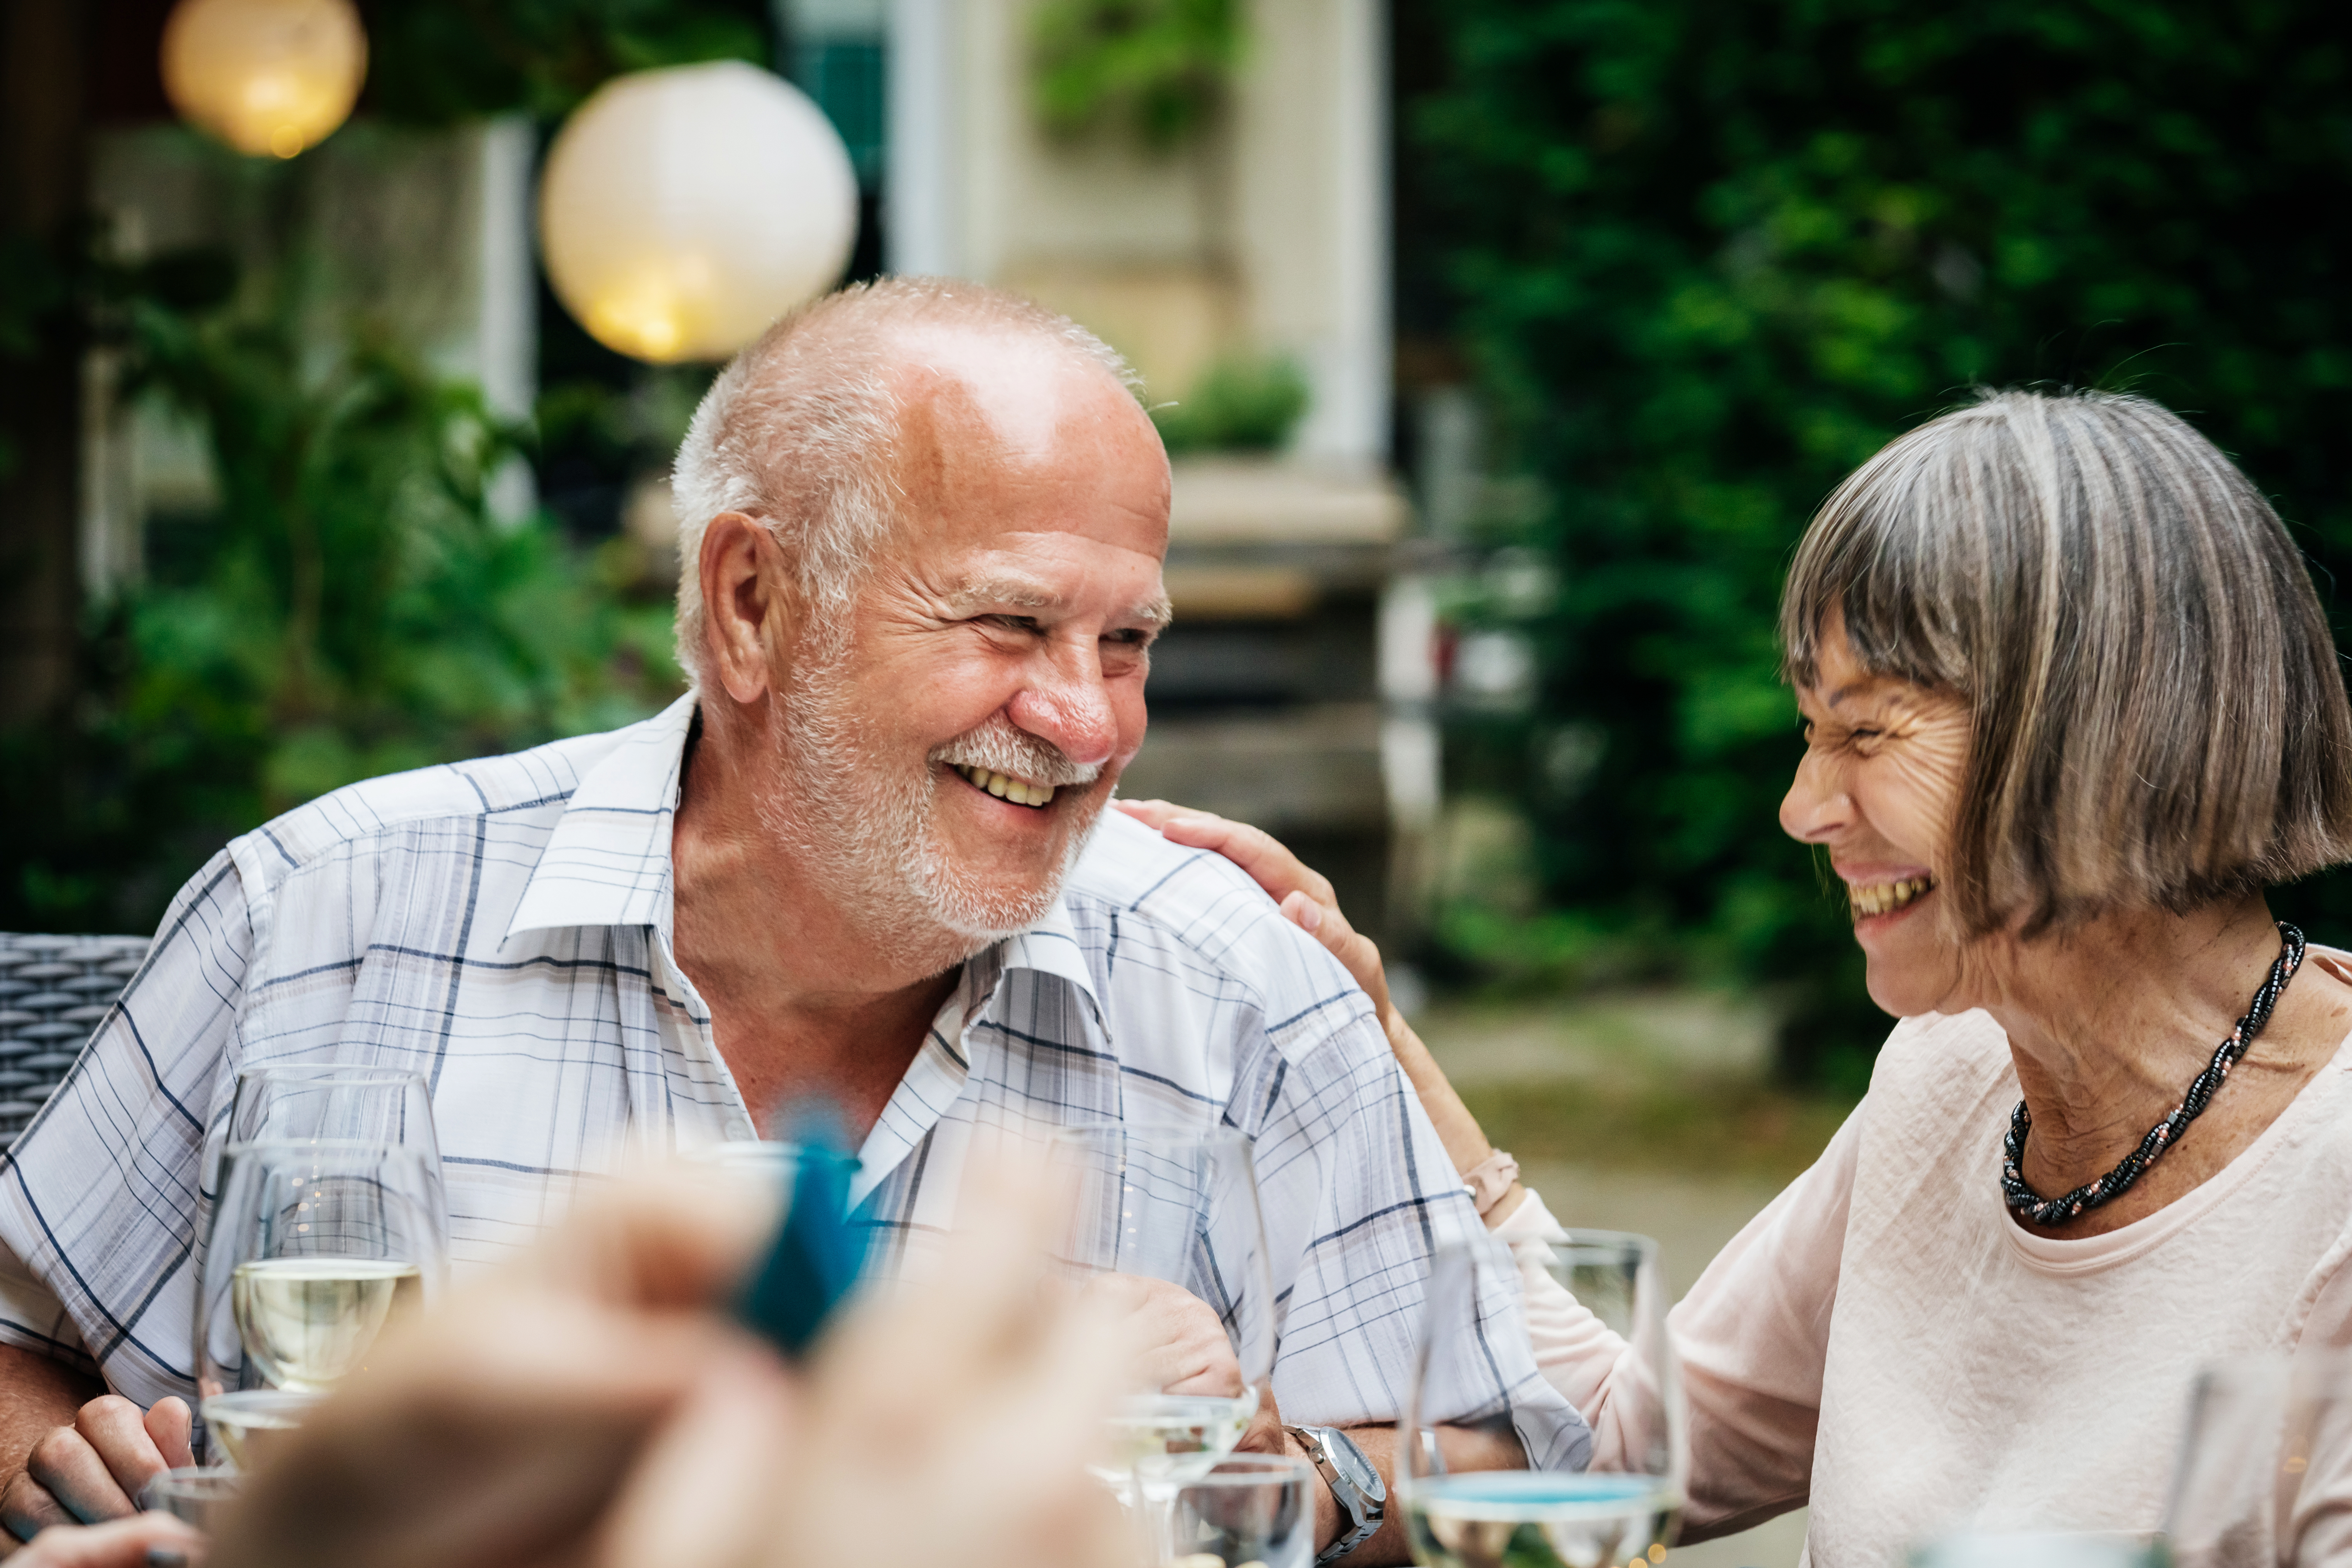 An elderly couople smiling and drinking at a family barbecue in a courtyard.